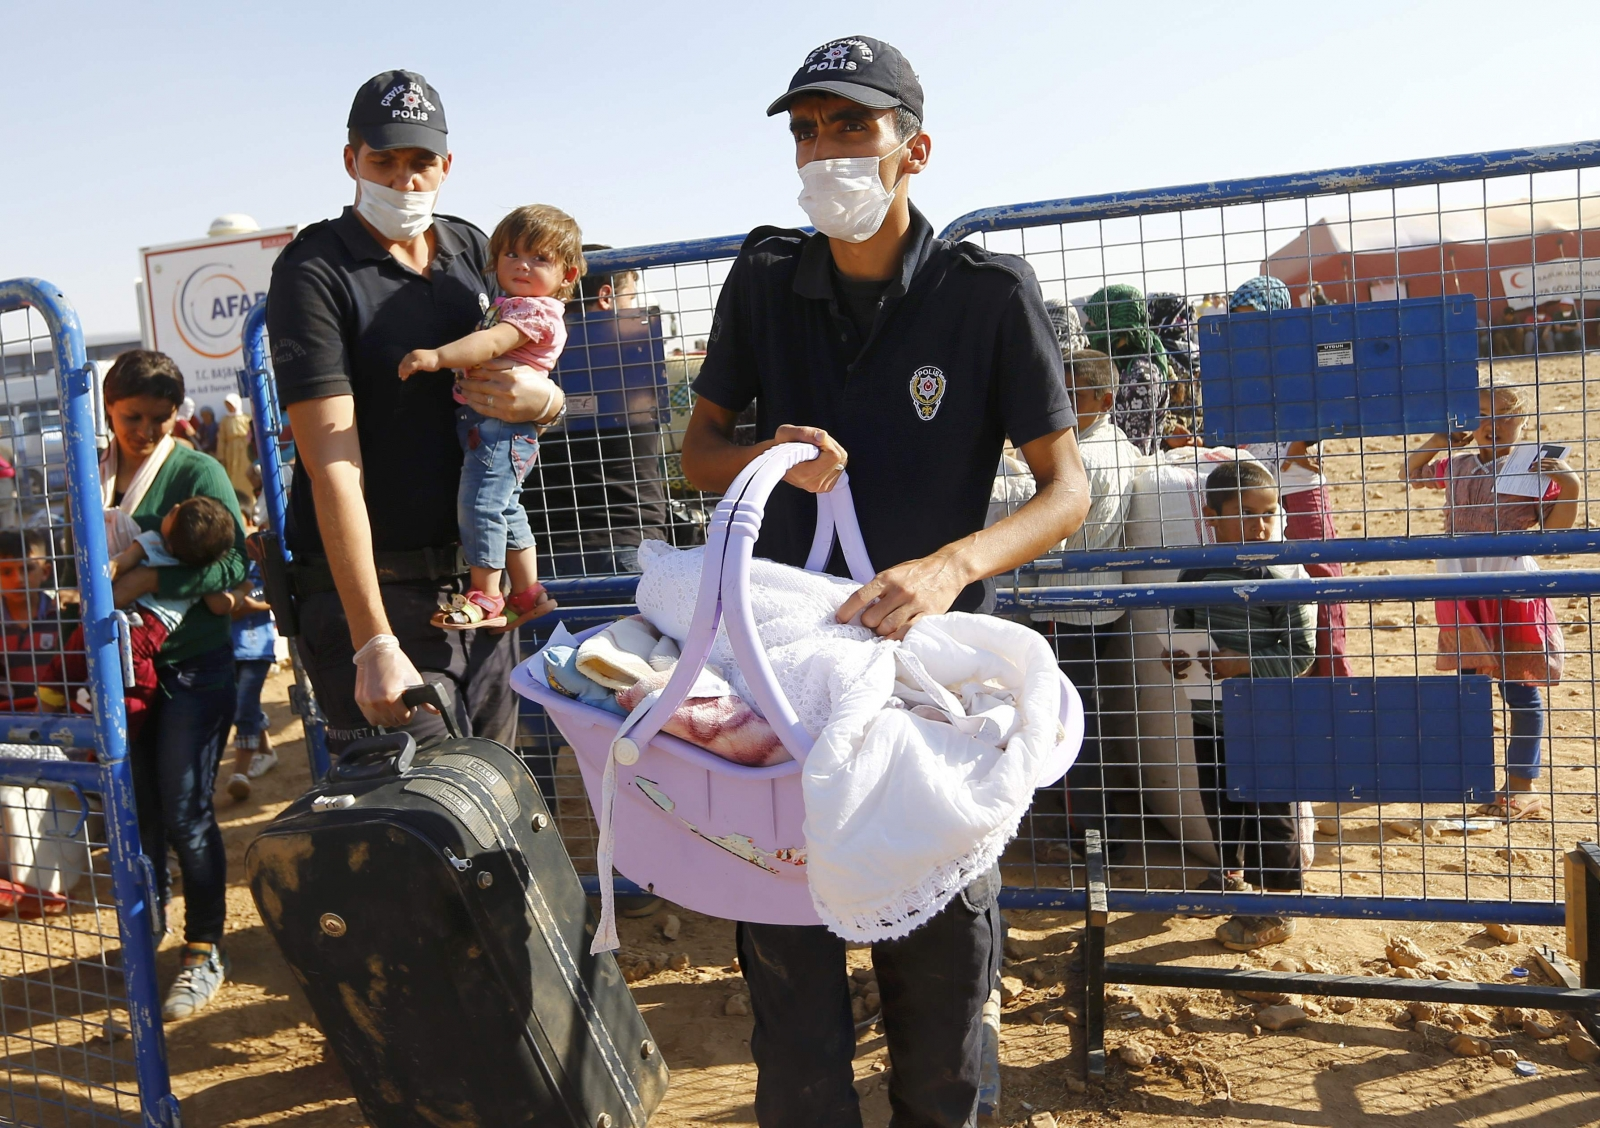 Hundreds of Syrian Refugees Cross into Turkey as Border Crossing Opens